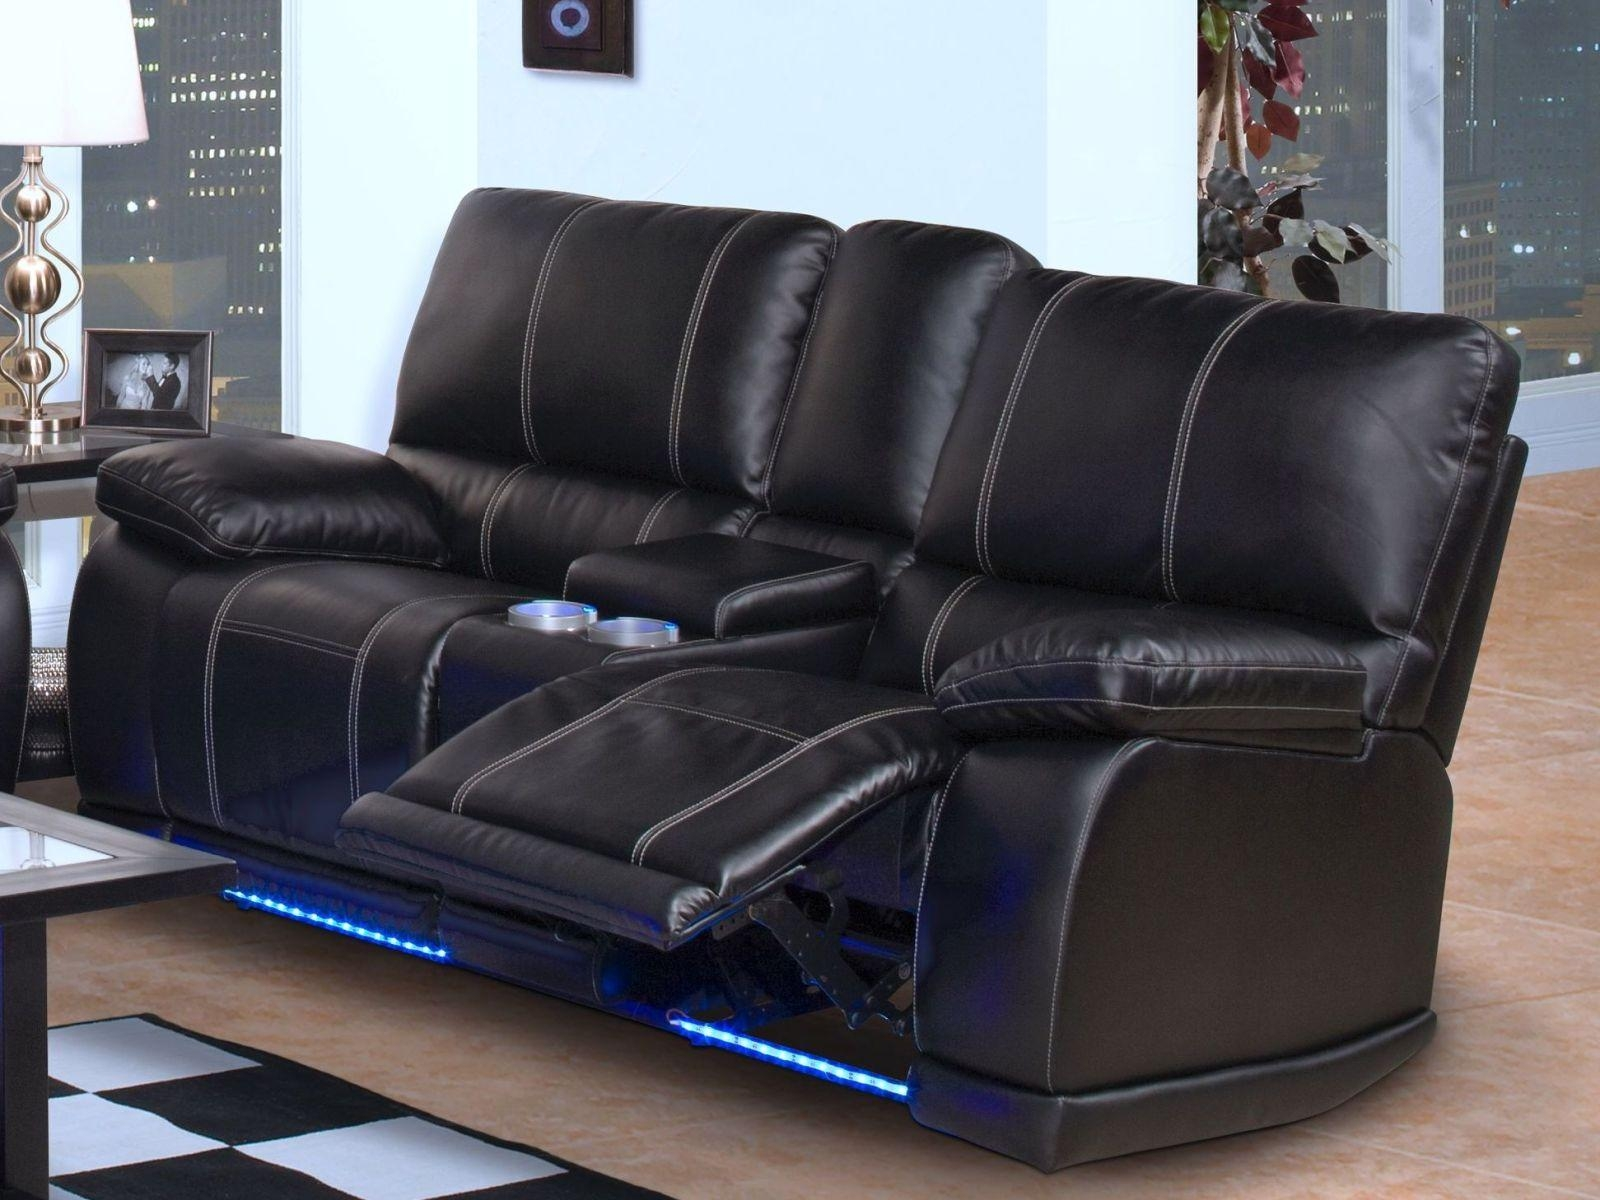 ▻ Sofa : 39 Black Bonded Leather Reclining Sofa Console Storage Pertaining To Sofas With Cup Holders (View 17 of 20)